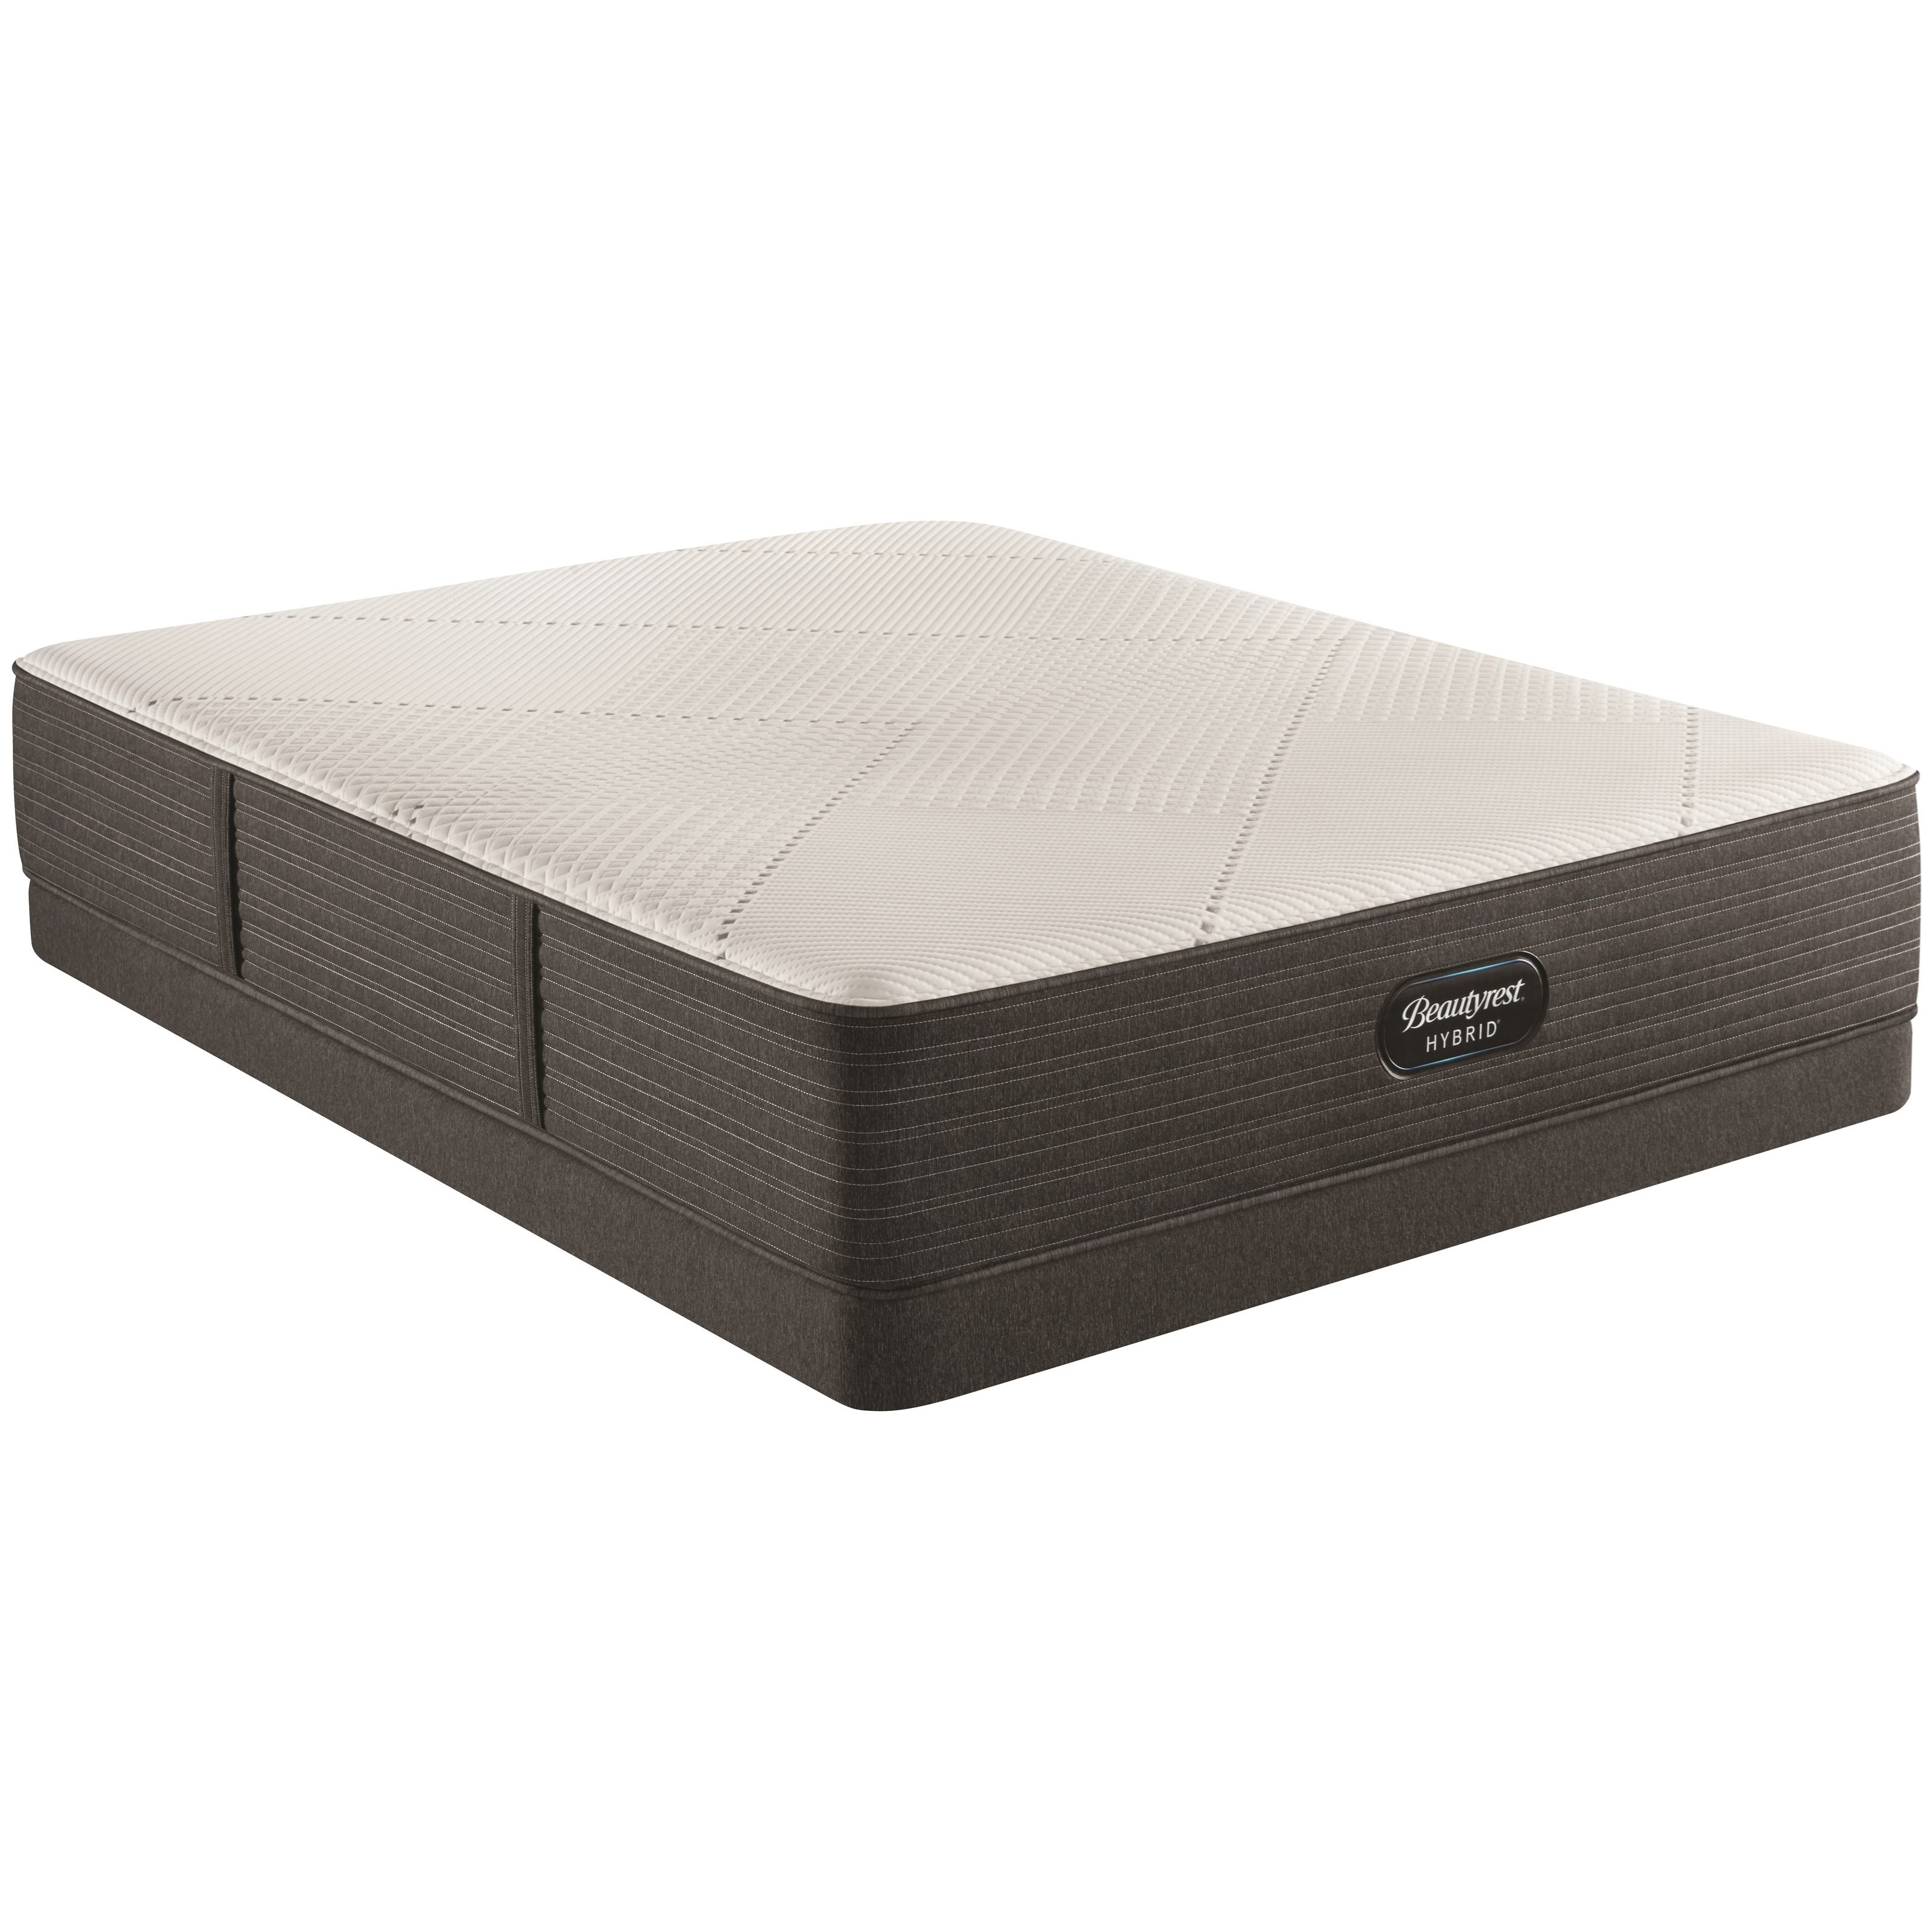 """BRX1000-IP Medium Twin 13 1/2"""" Hybrid Low Profile Set by Beautyrest at Rotmans"""